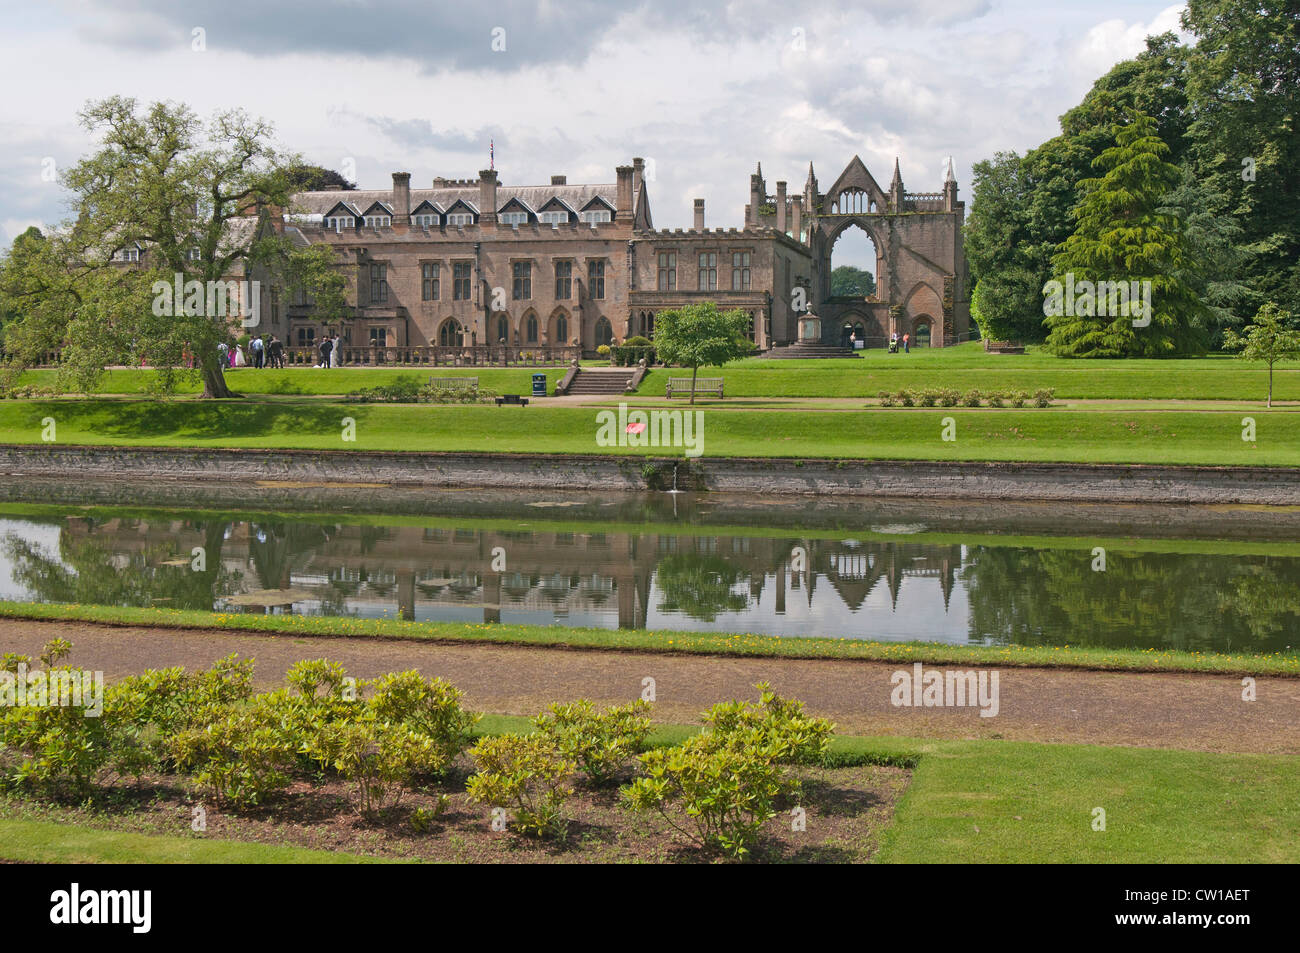 Newstead Abbey & Ruins, Nottinghamshire, England, UK - Stock Image